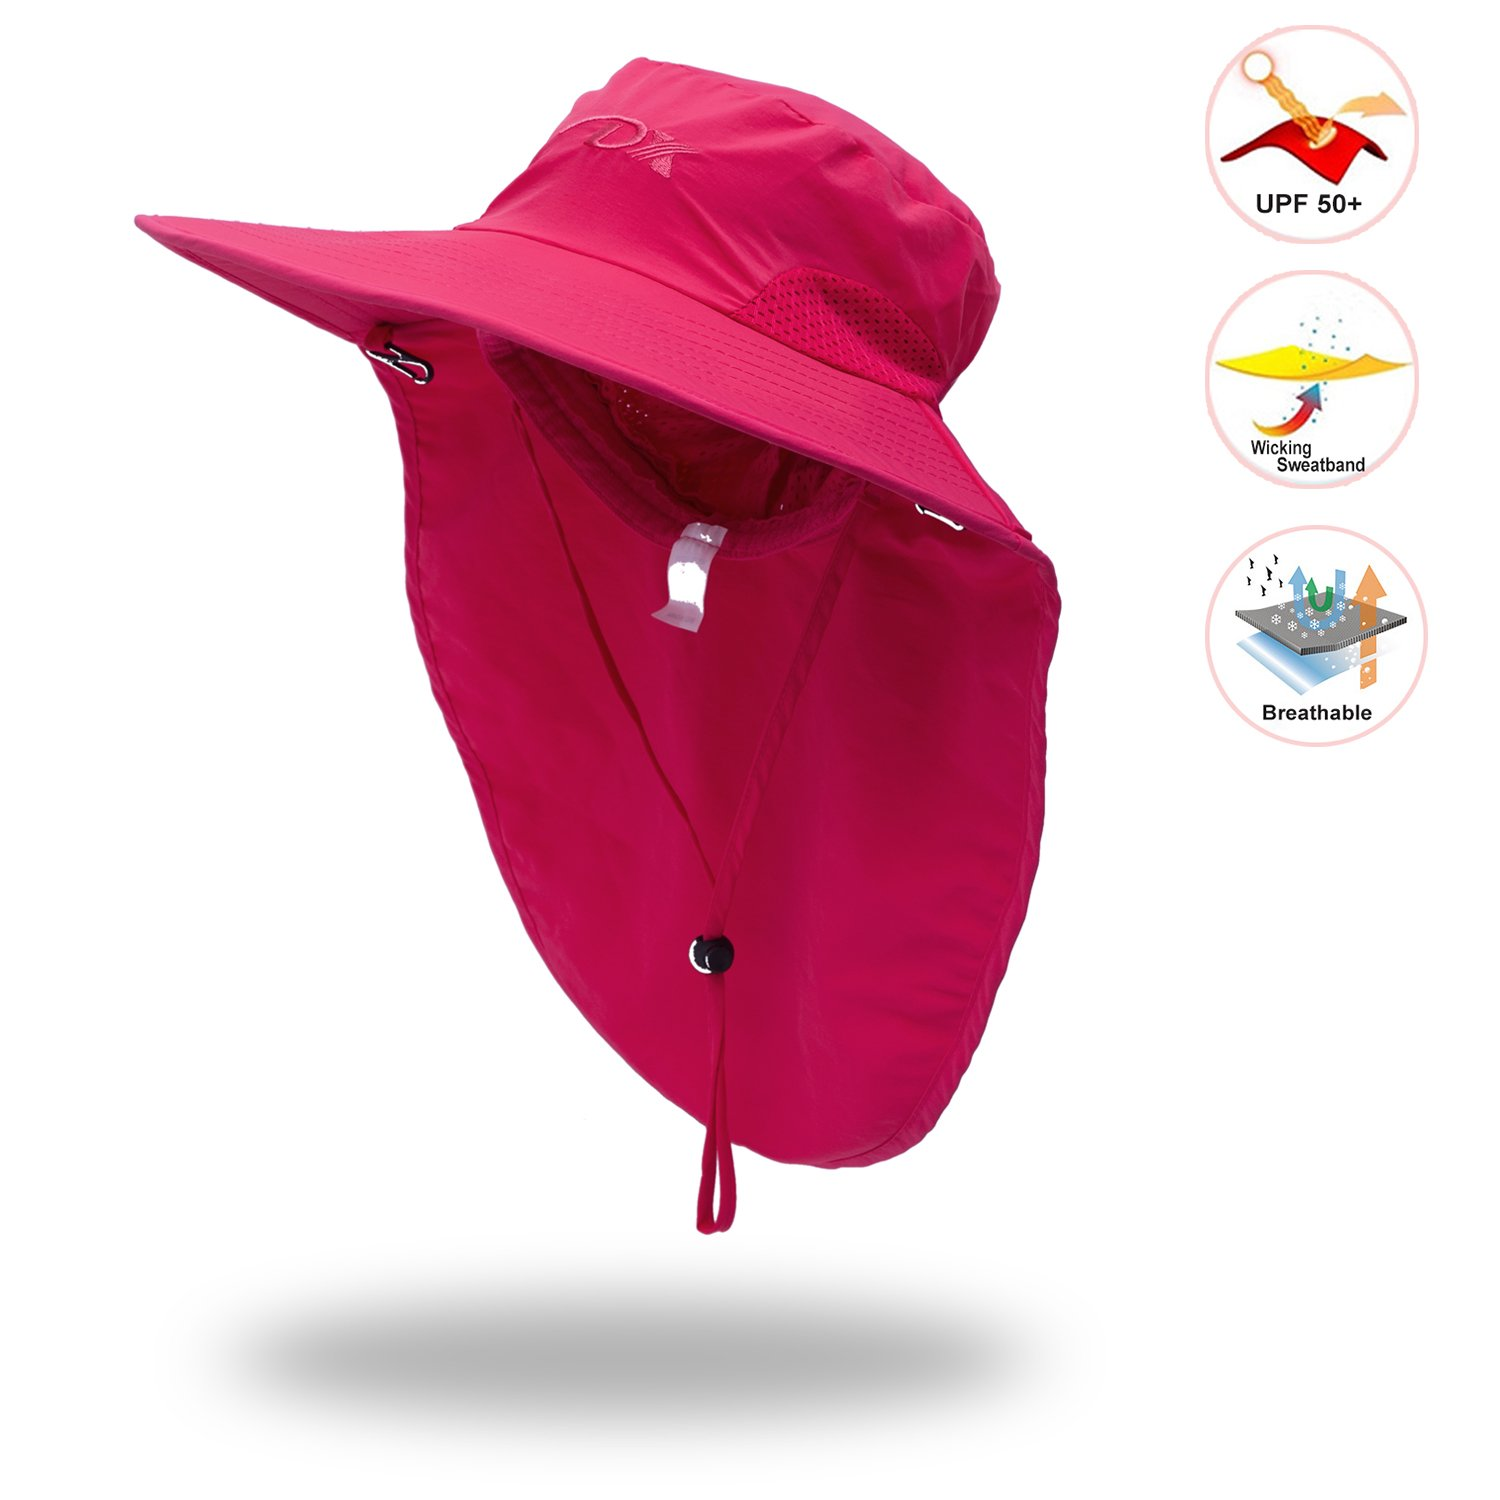 82c13d989f2 Amazon.com  Anleolife Rose Red Sun Hat for Women SPF UV Protection Travel  Biking Boating Hiking Beach Vacation Bucket Cap  Sports   Outdoors